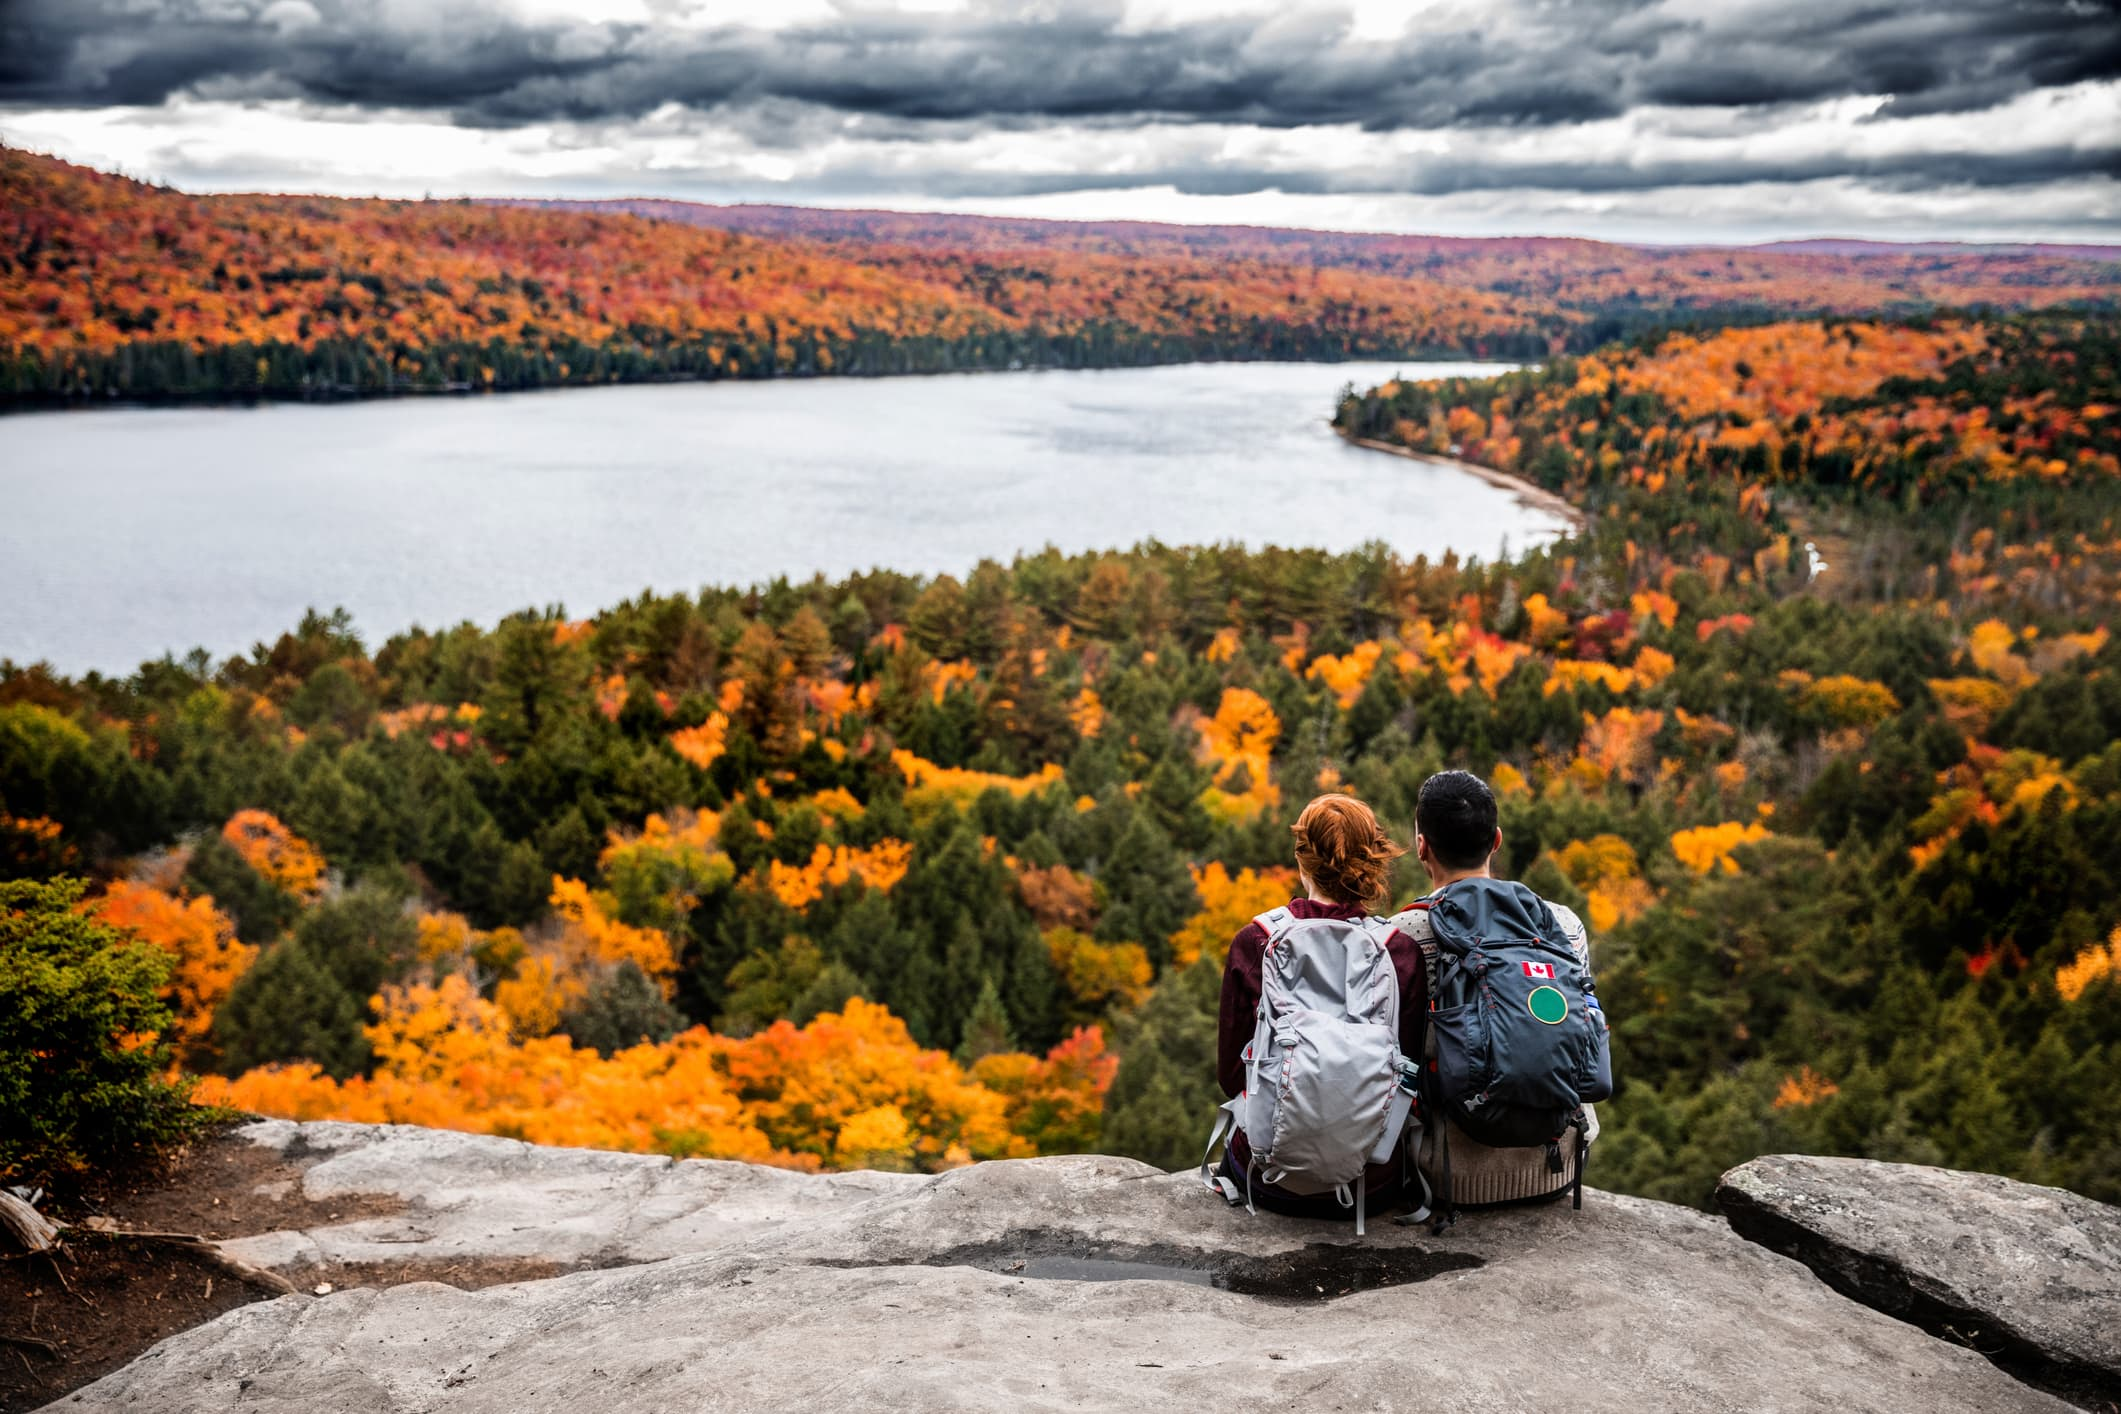 Want a budget-friendly trip this fall? Follow these 10 tips